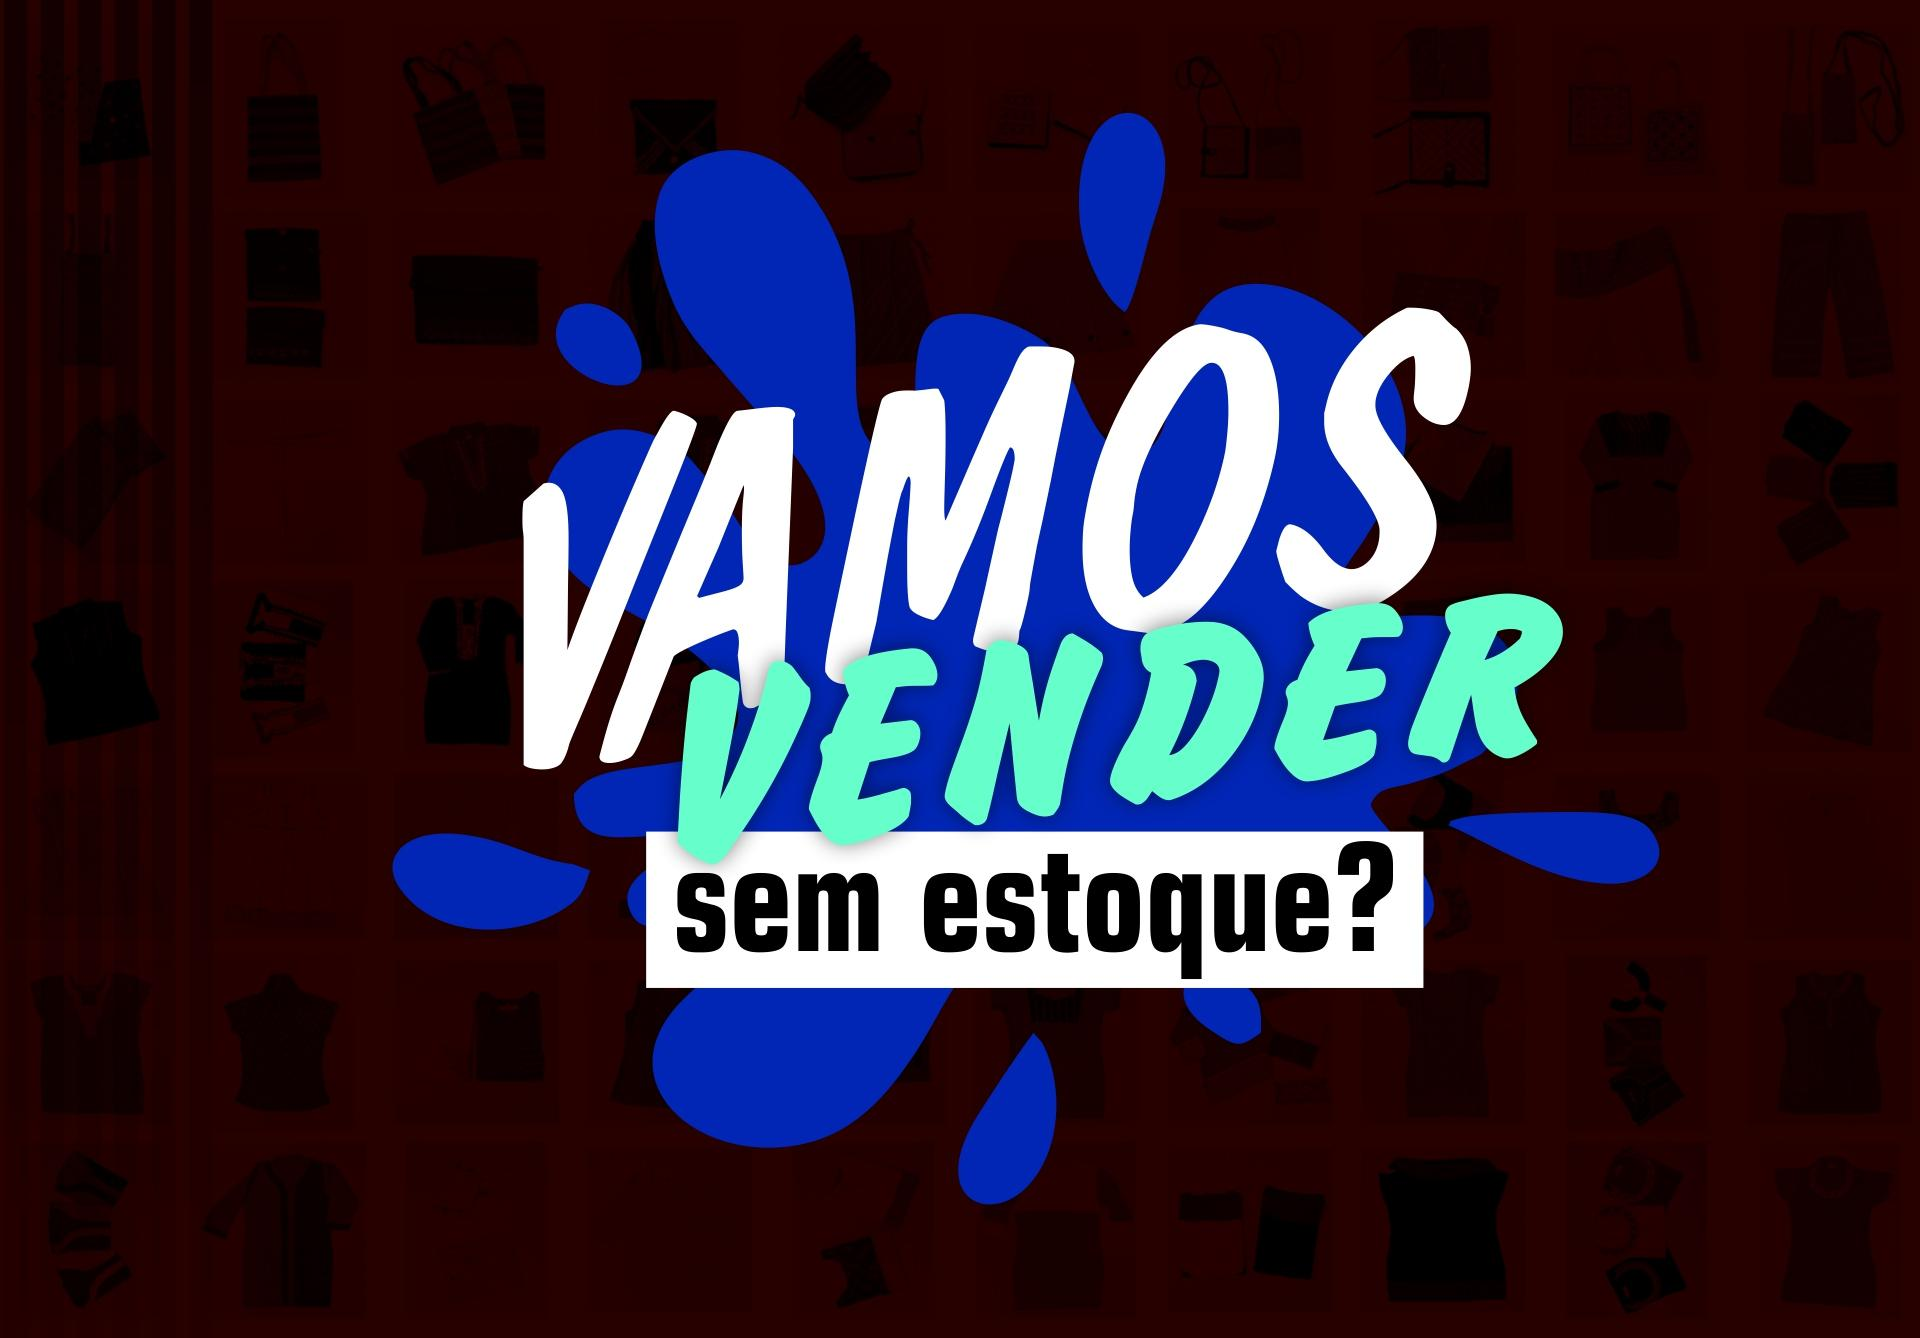 Vamos vender sem Estoque  - Academia do Ecommerce 9bb3a4fdeea4d